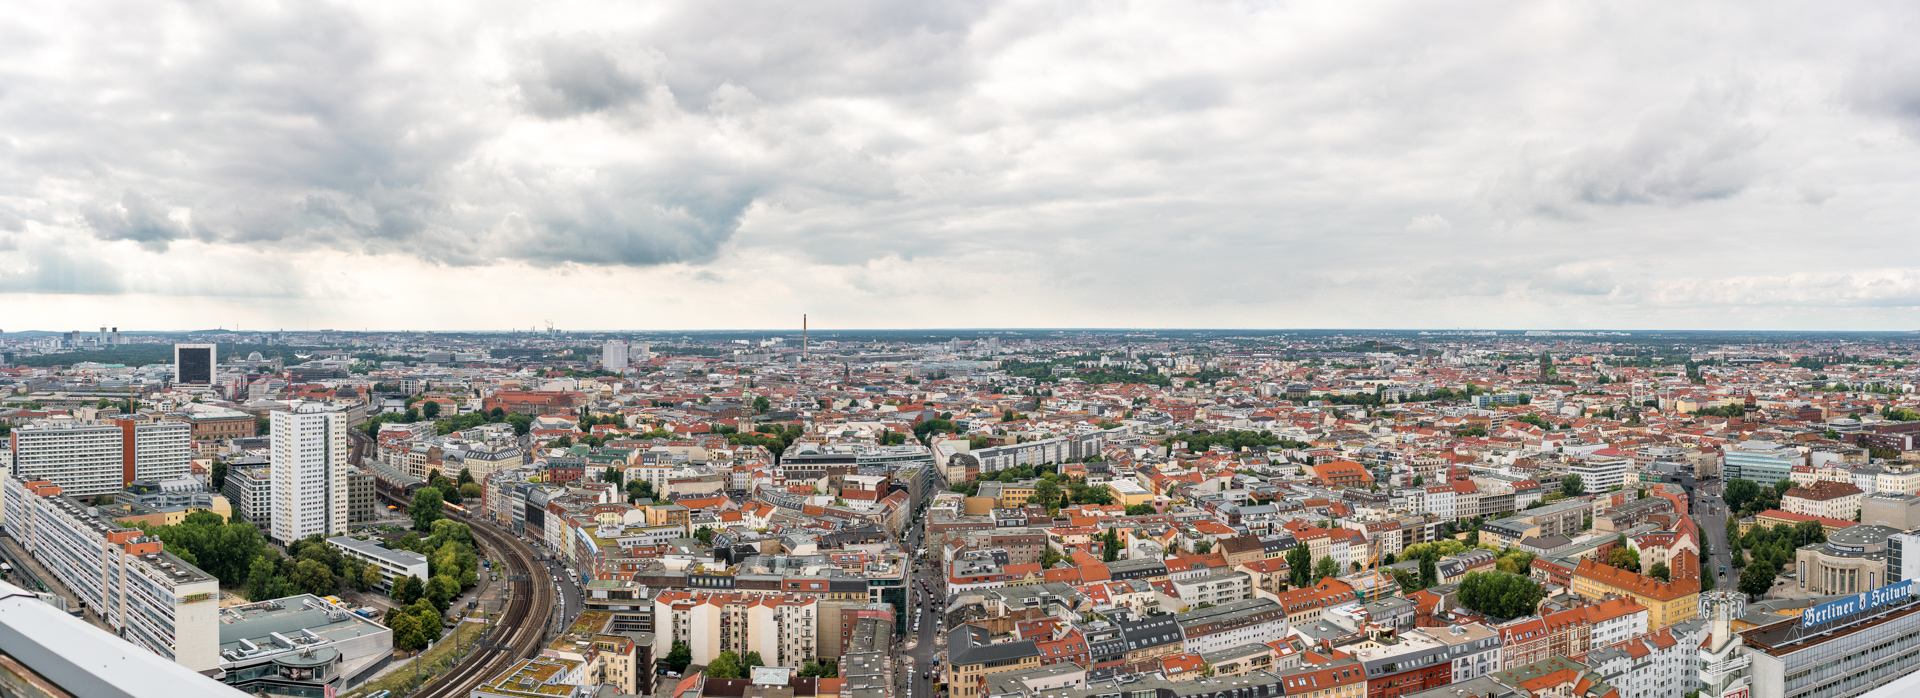 North-west view from our hotel. Click for 14K pixel wide panorama